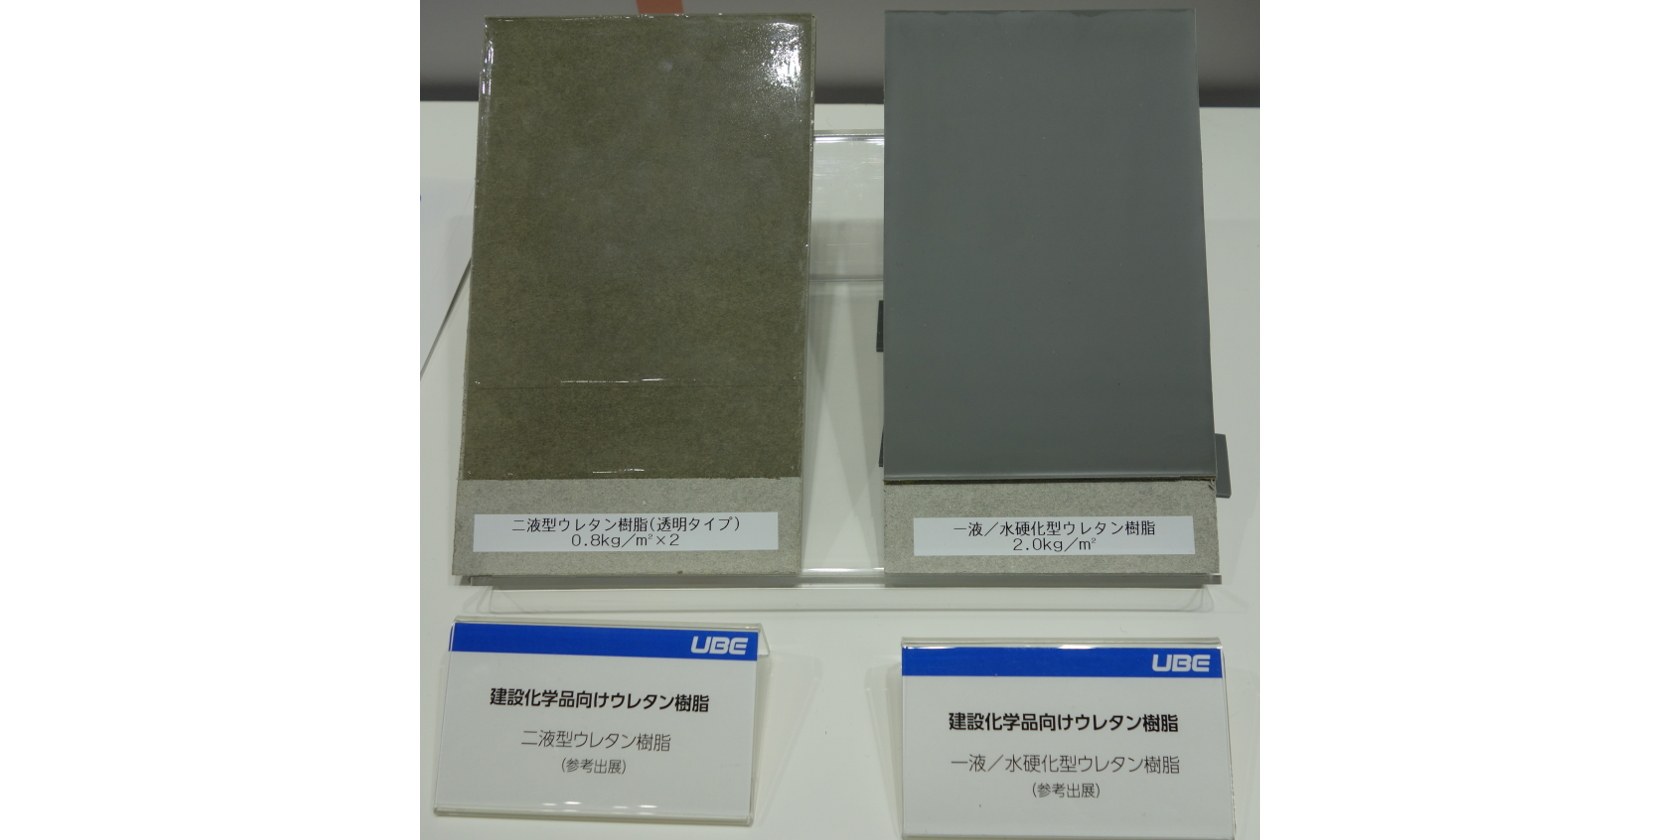 Ube Industries Develops New Urethane Resin for Preventing Concrete Deterioration